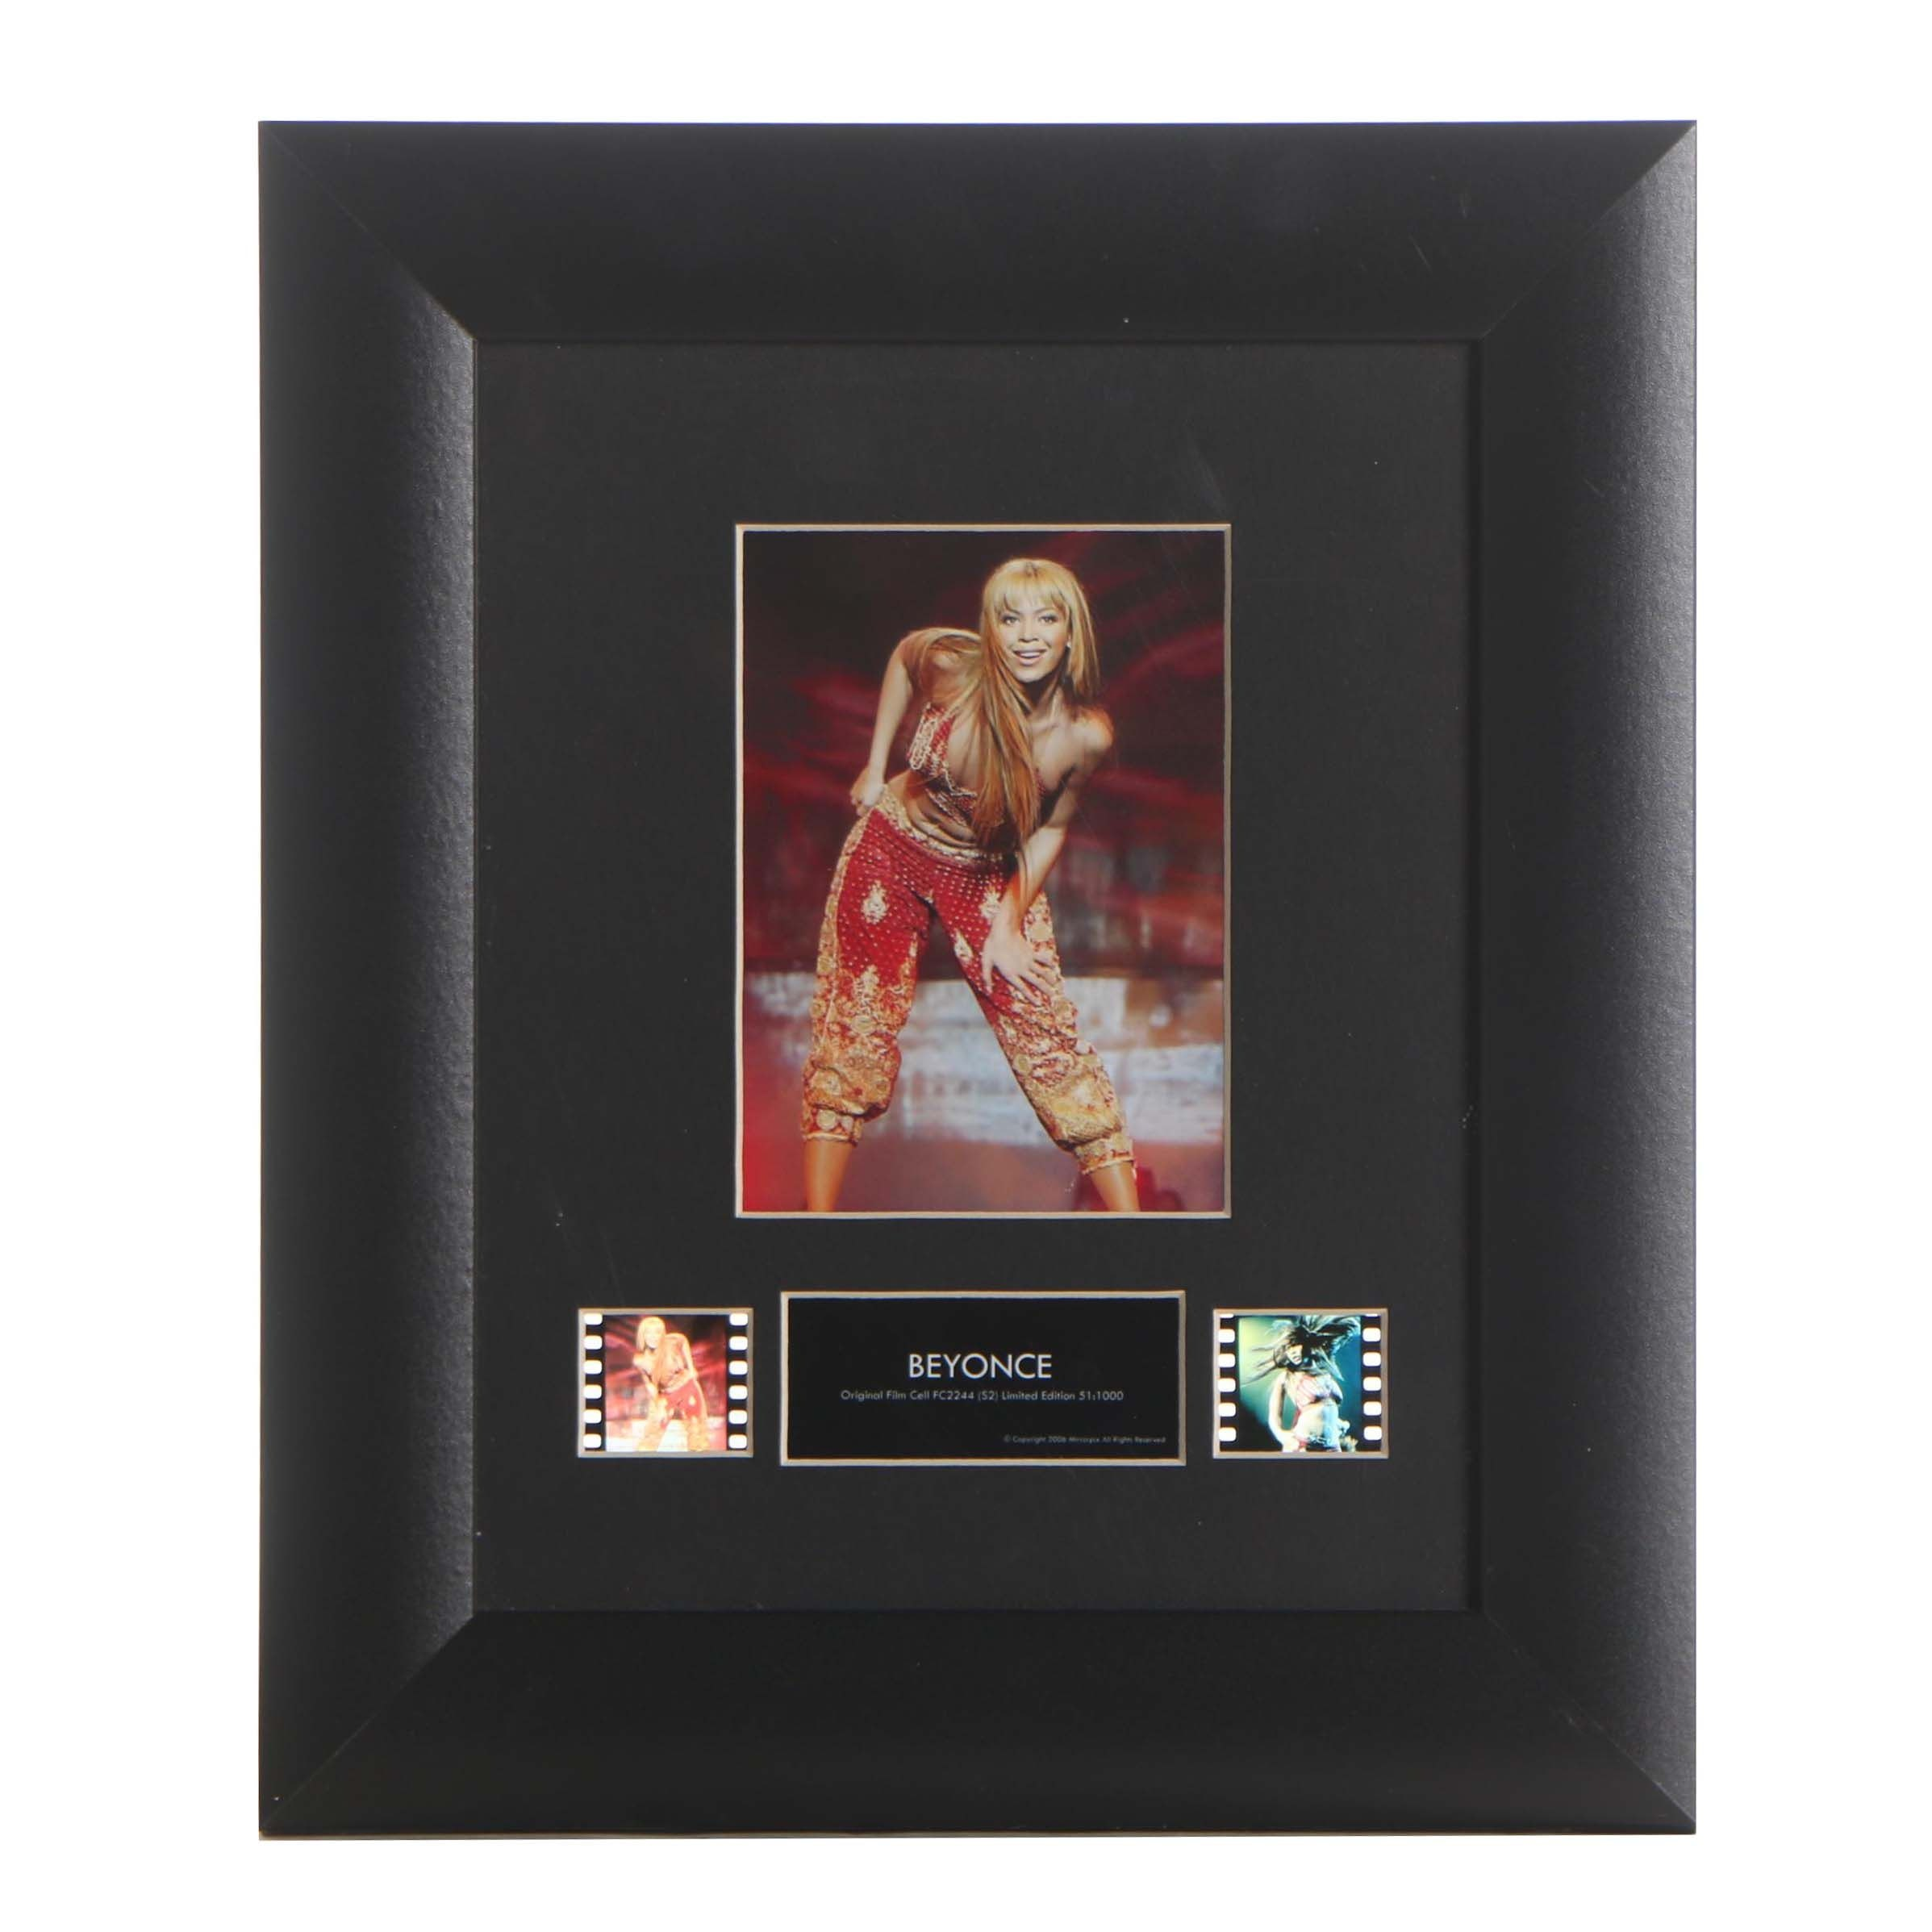 Beyonce Framed Color Photograph and Film Cells